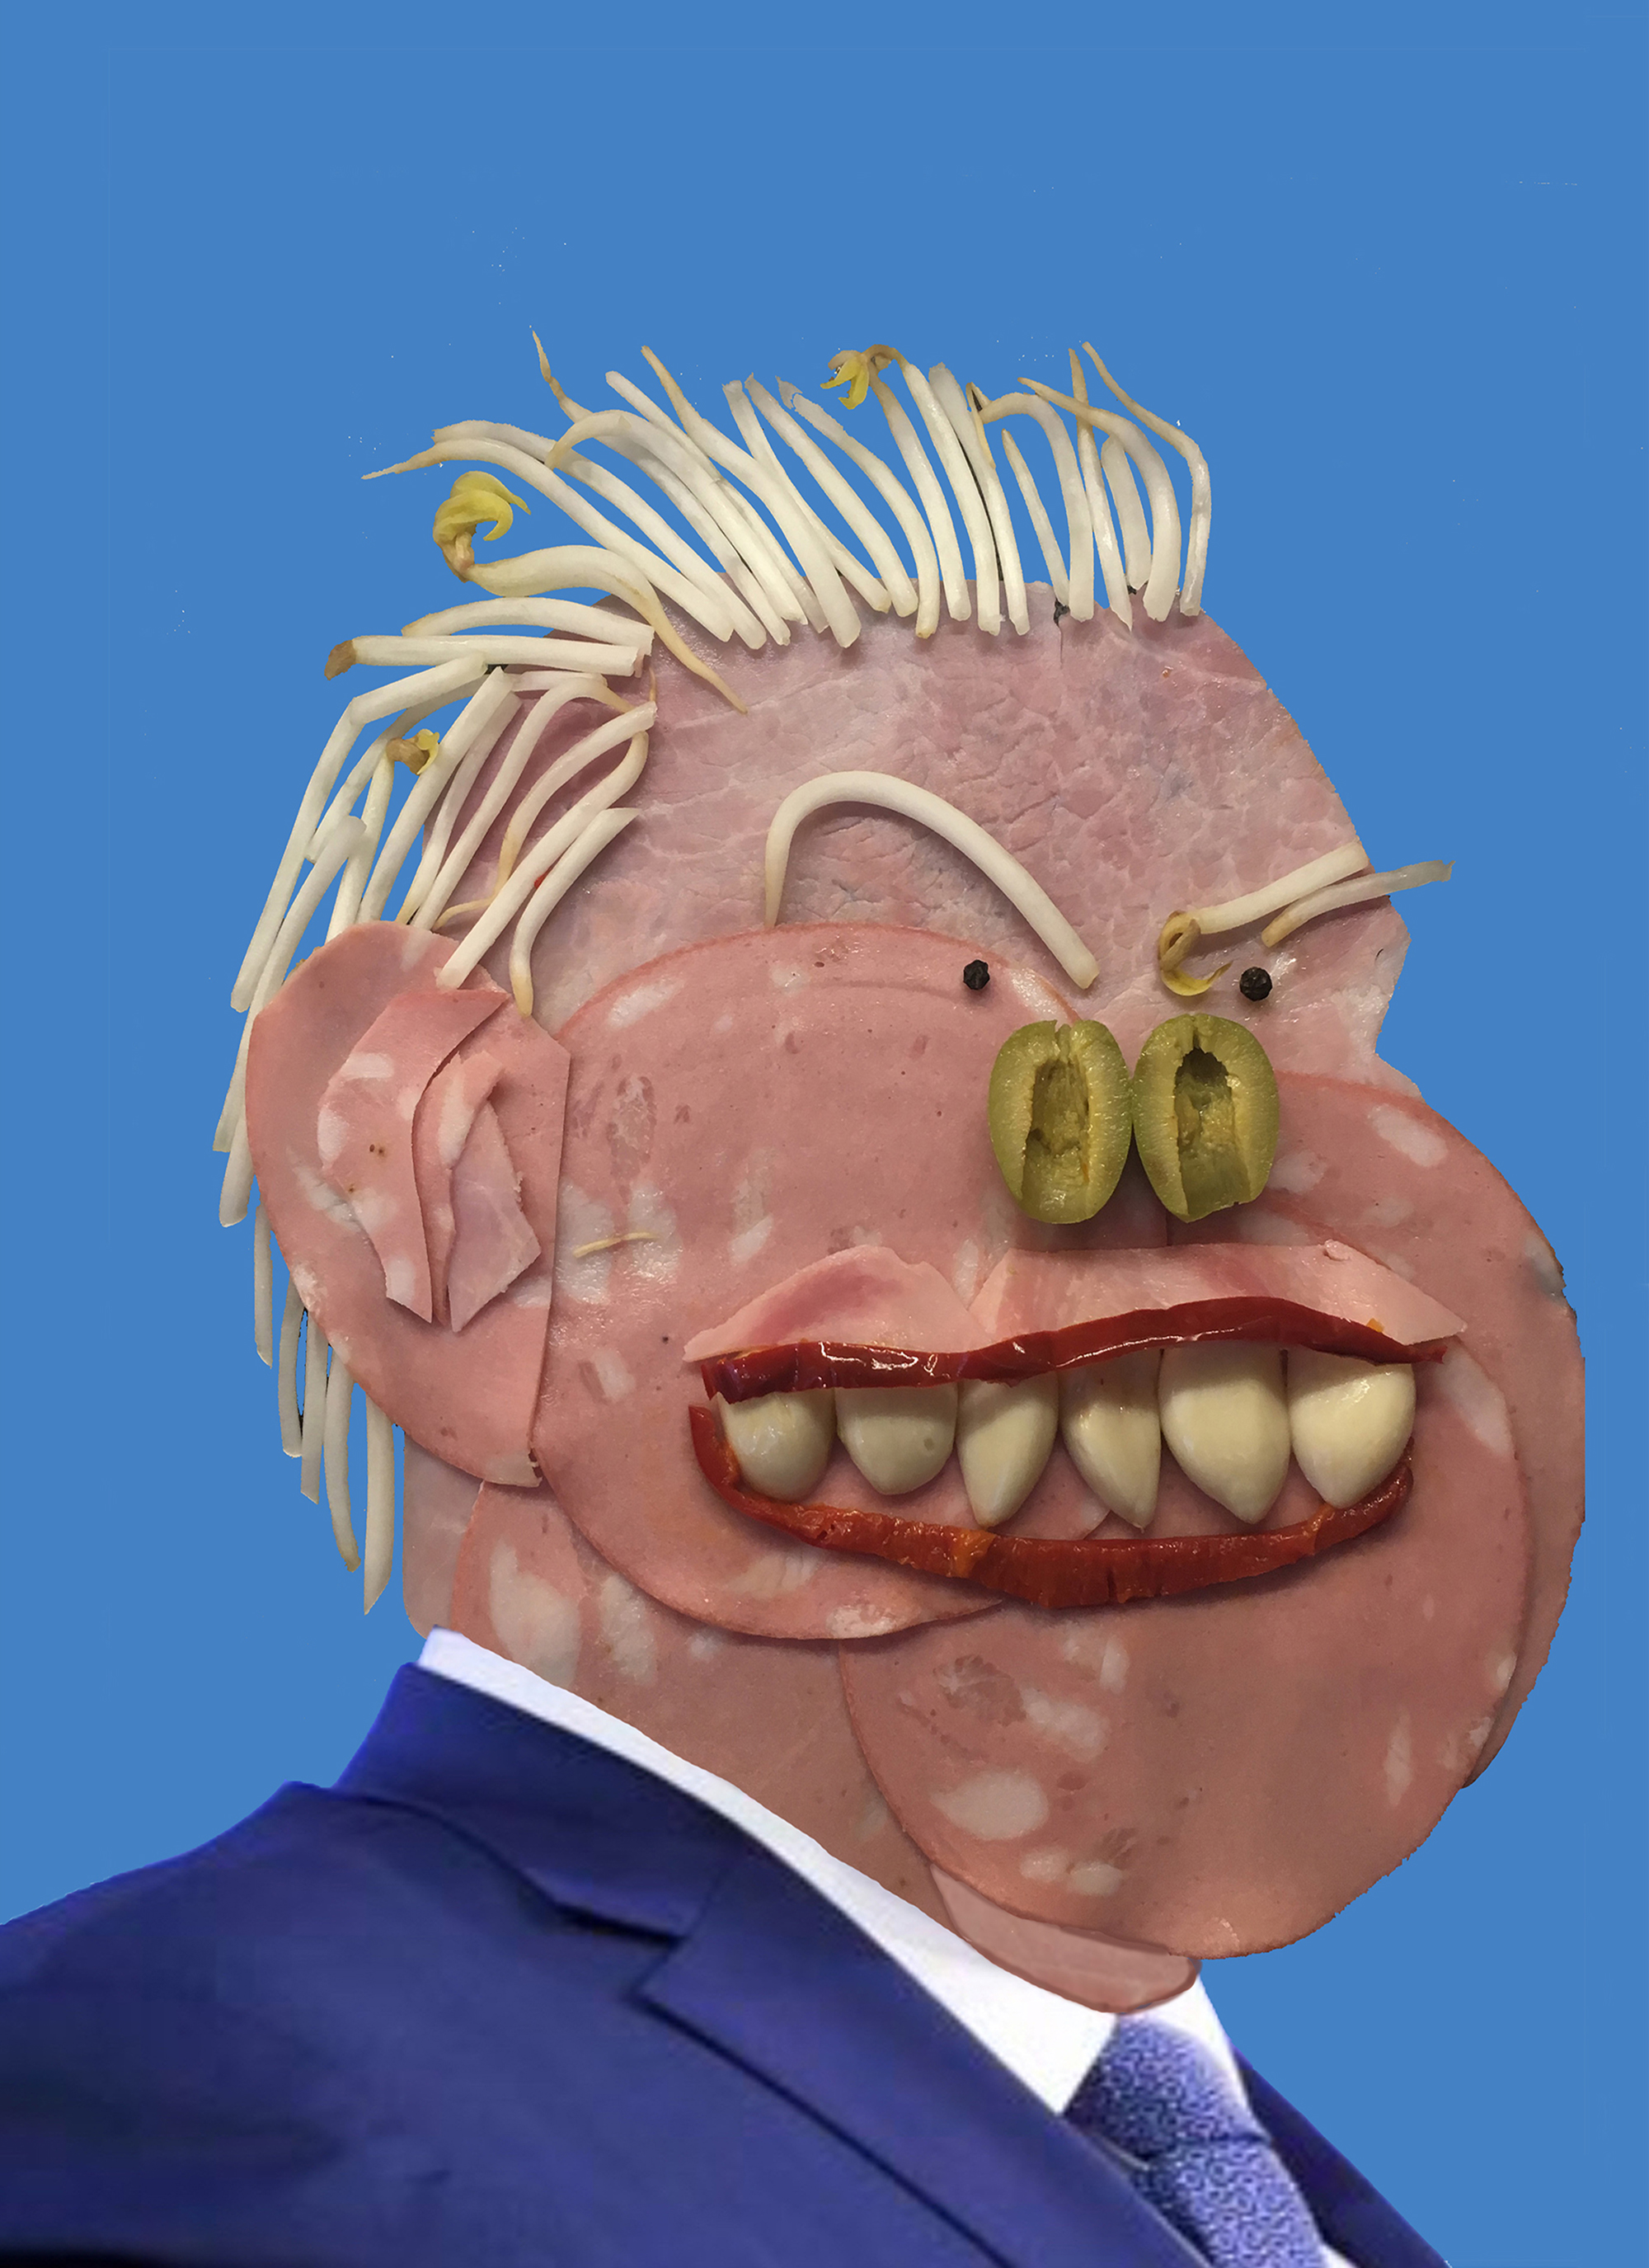 Meathead, by Barbara. An image of Doug Ford made using deli meats.